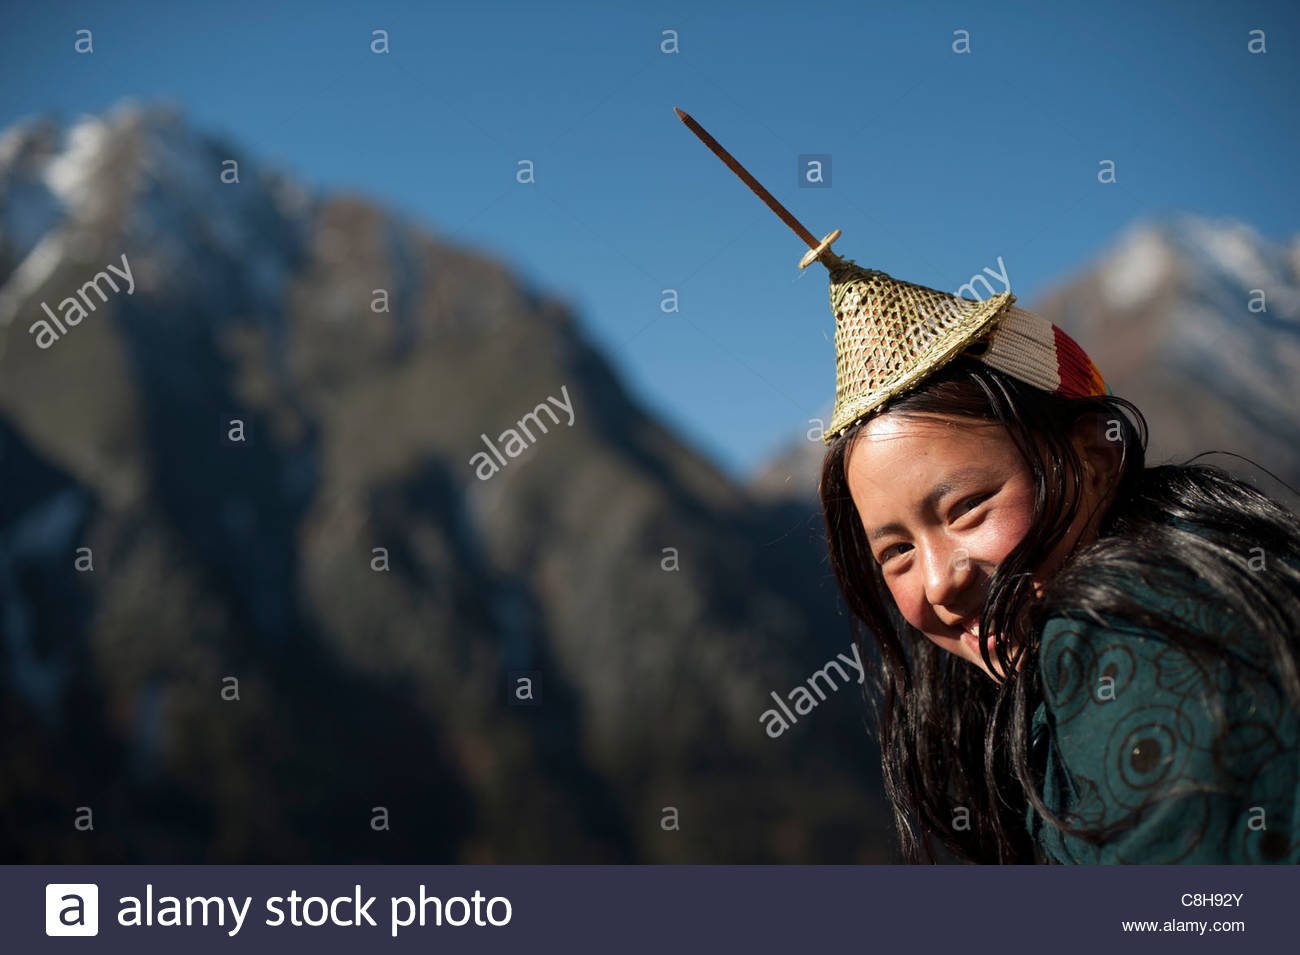 A Layap girl smiles for the camera in the remote village of Laya. Stock Photo